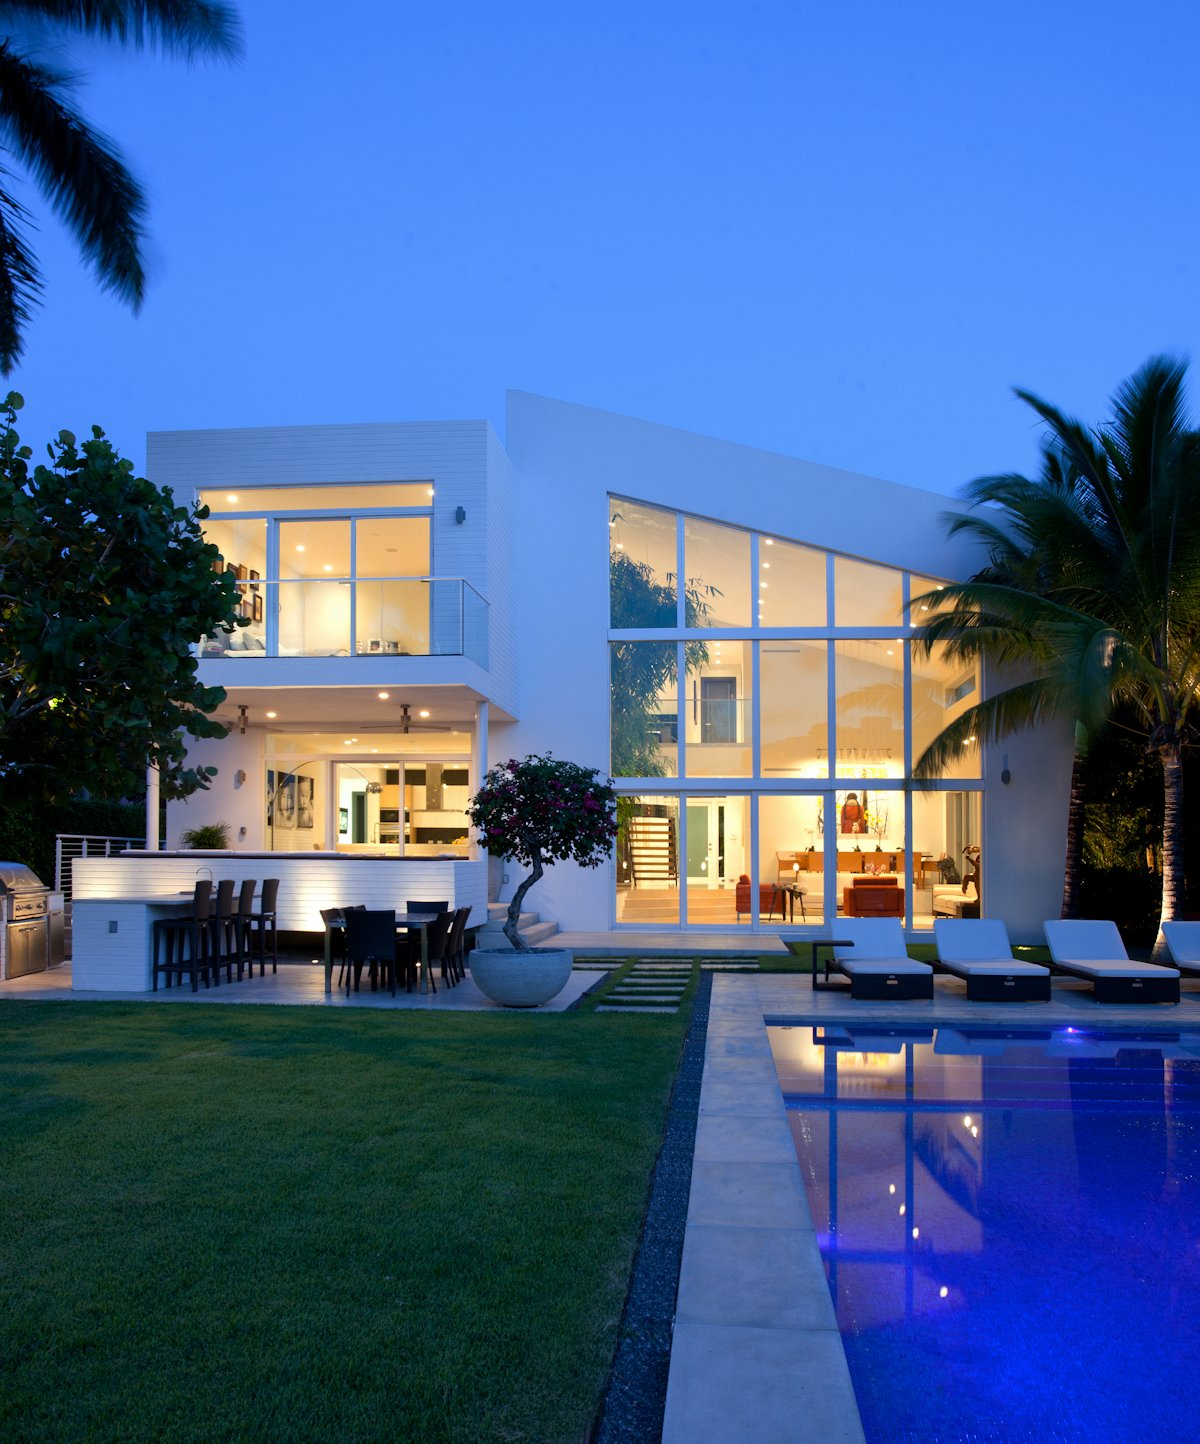 Evening, Pool, Terrace, House in Golden Beach, Florida